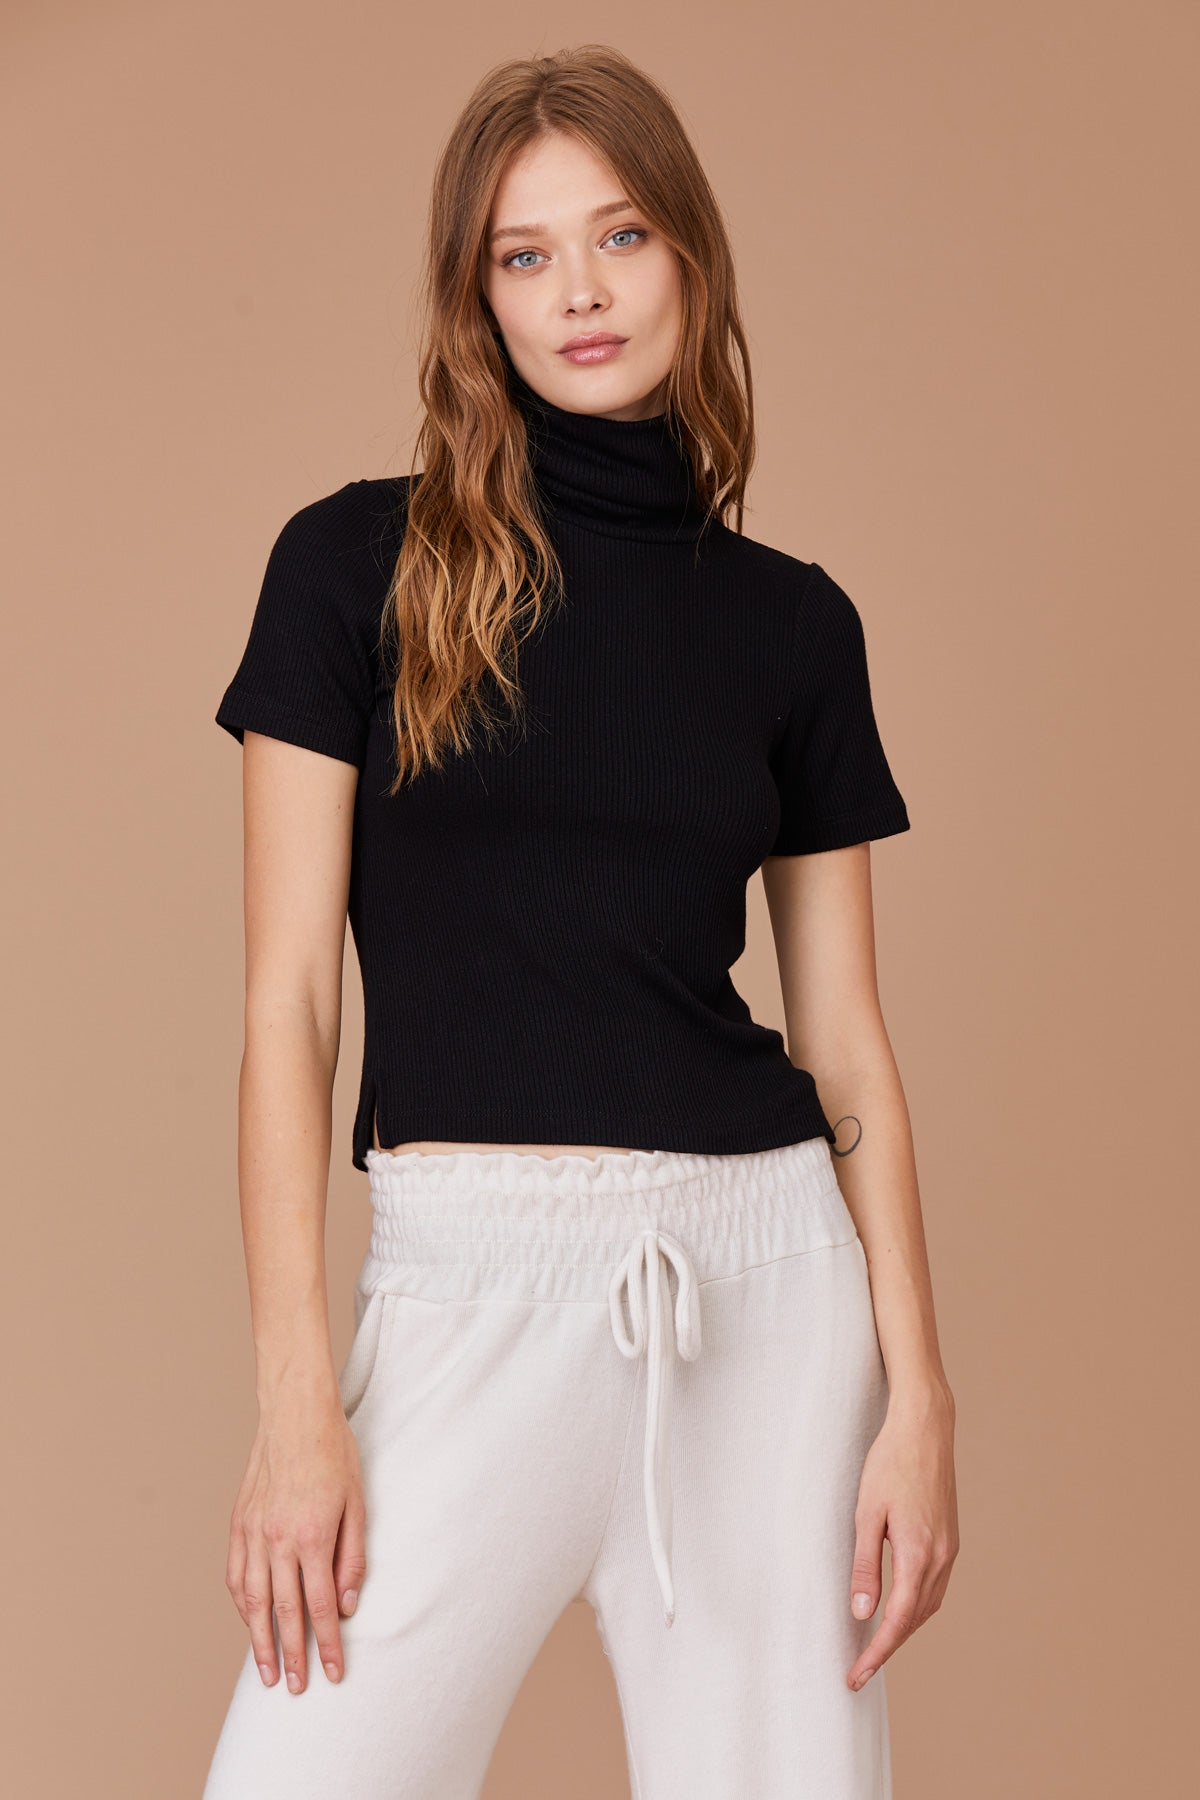 LNA Berlin Turtleneck Top in Black